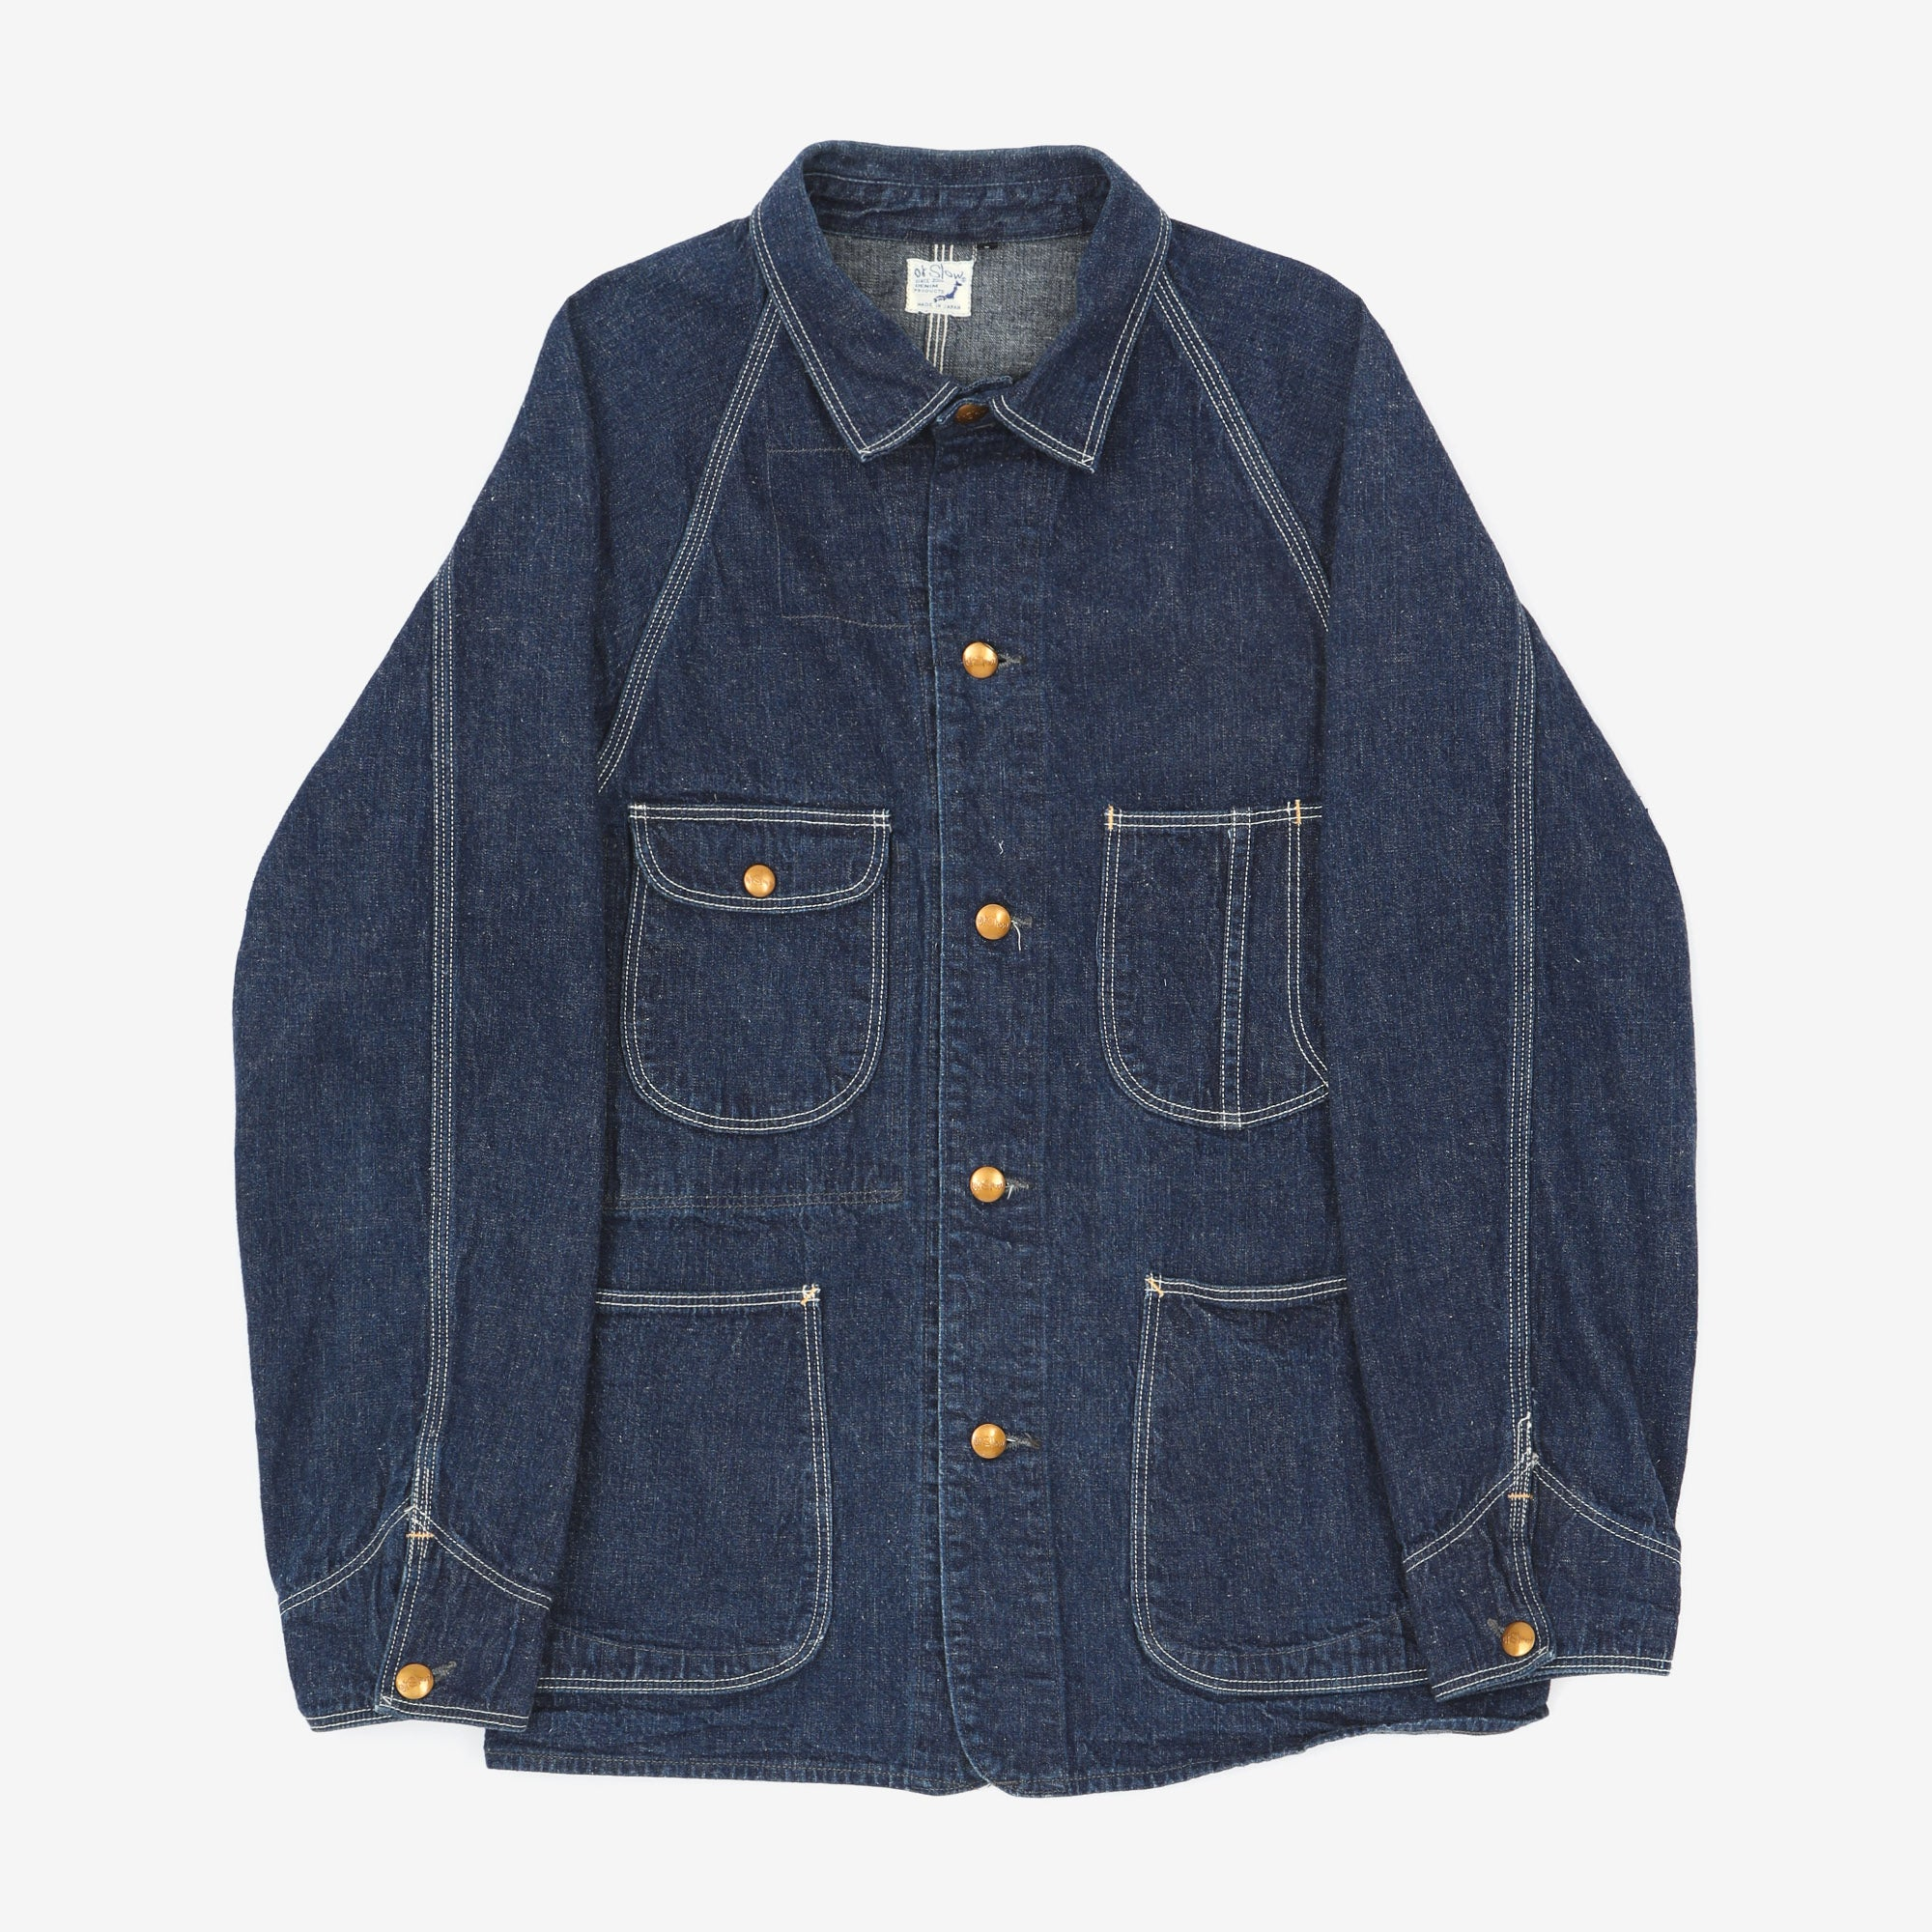 1950's Denim Coverall Jacket